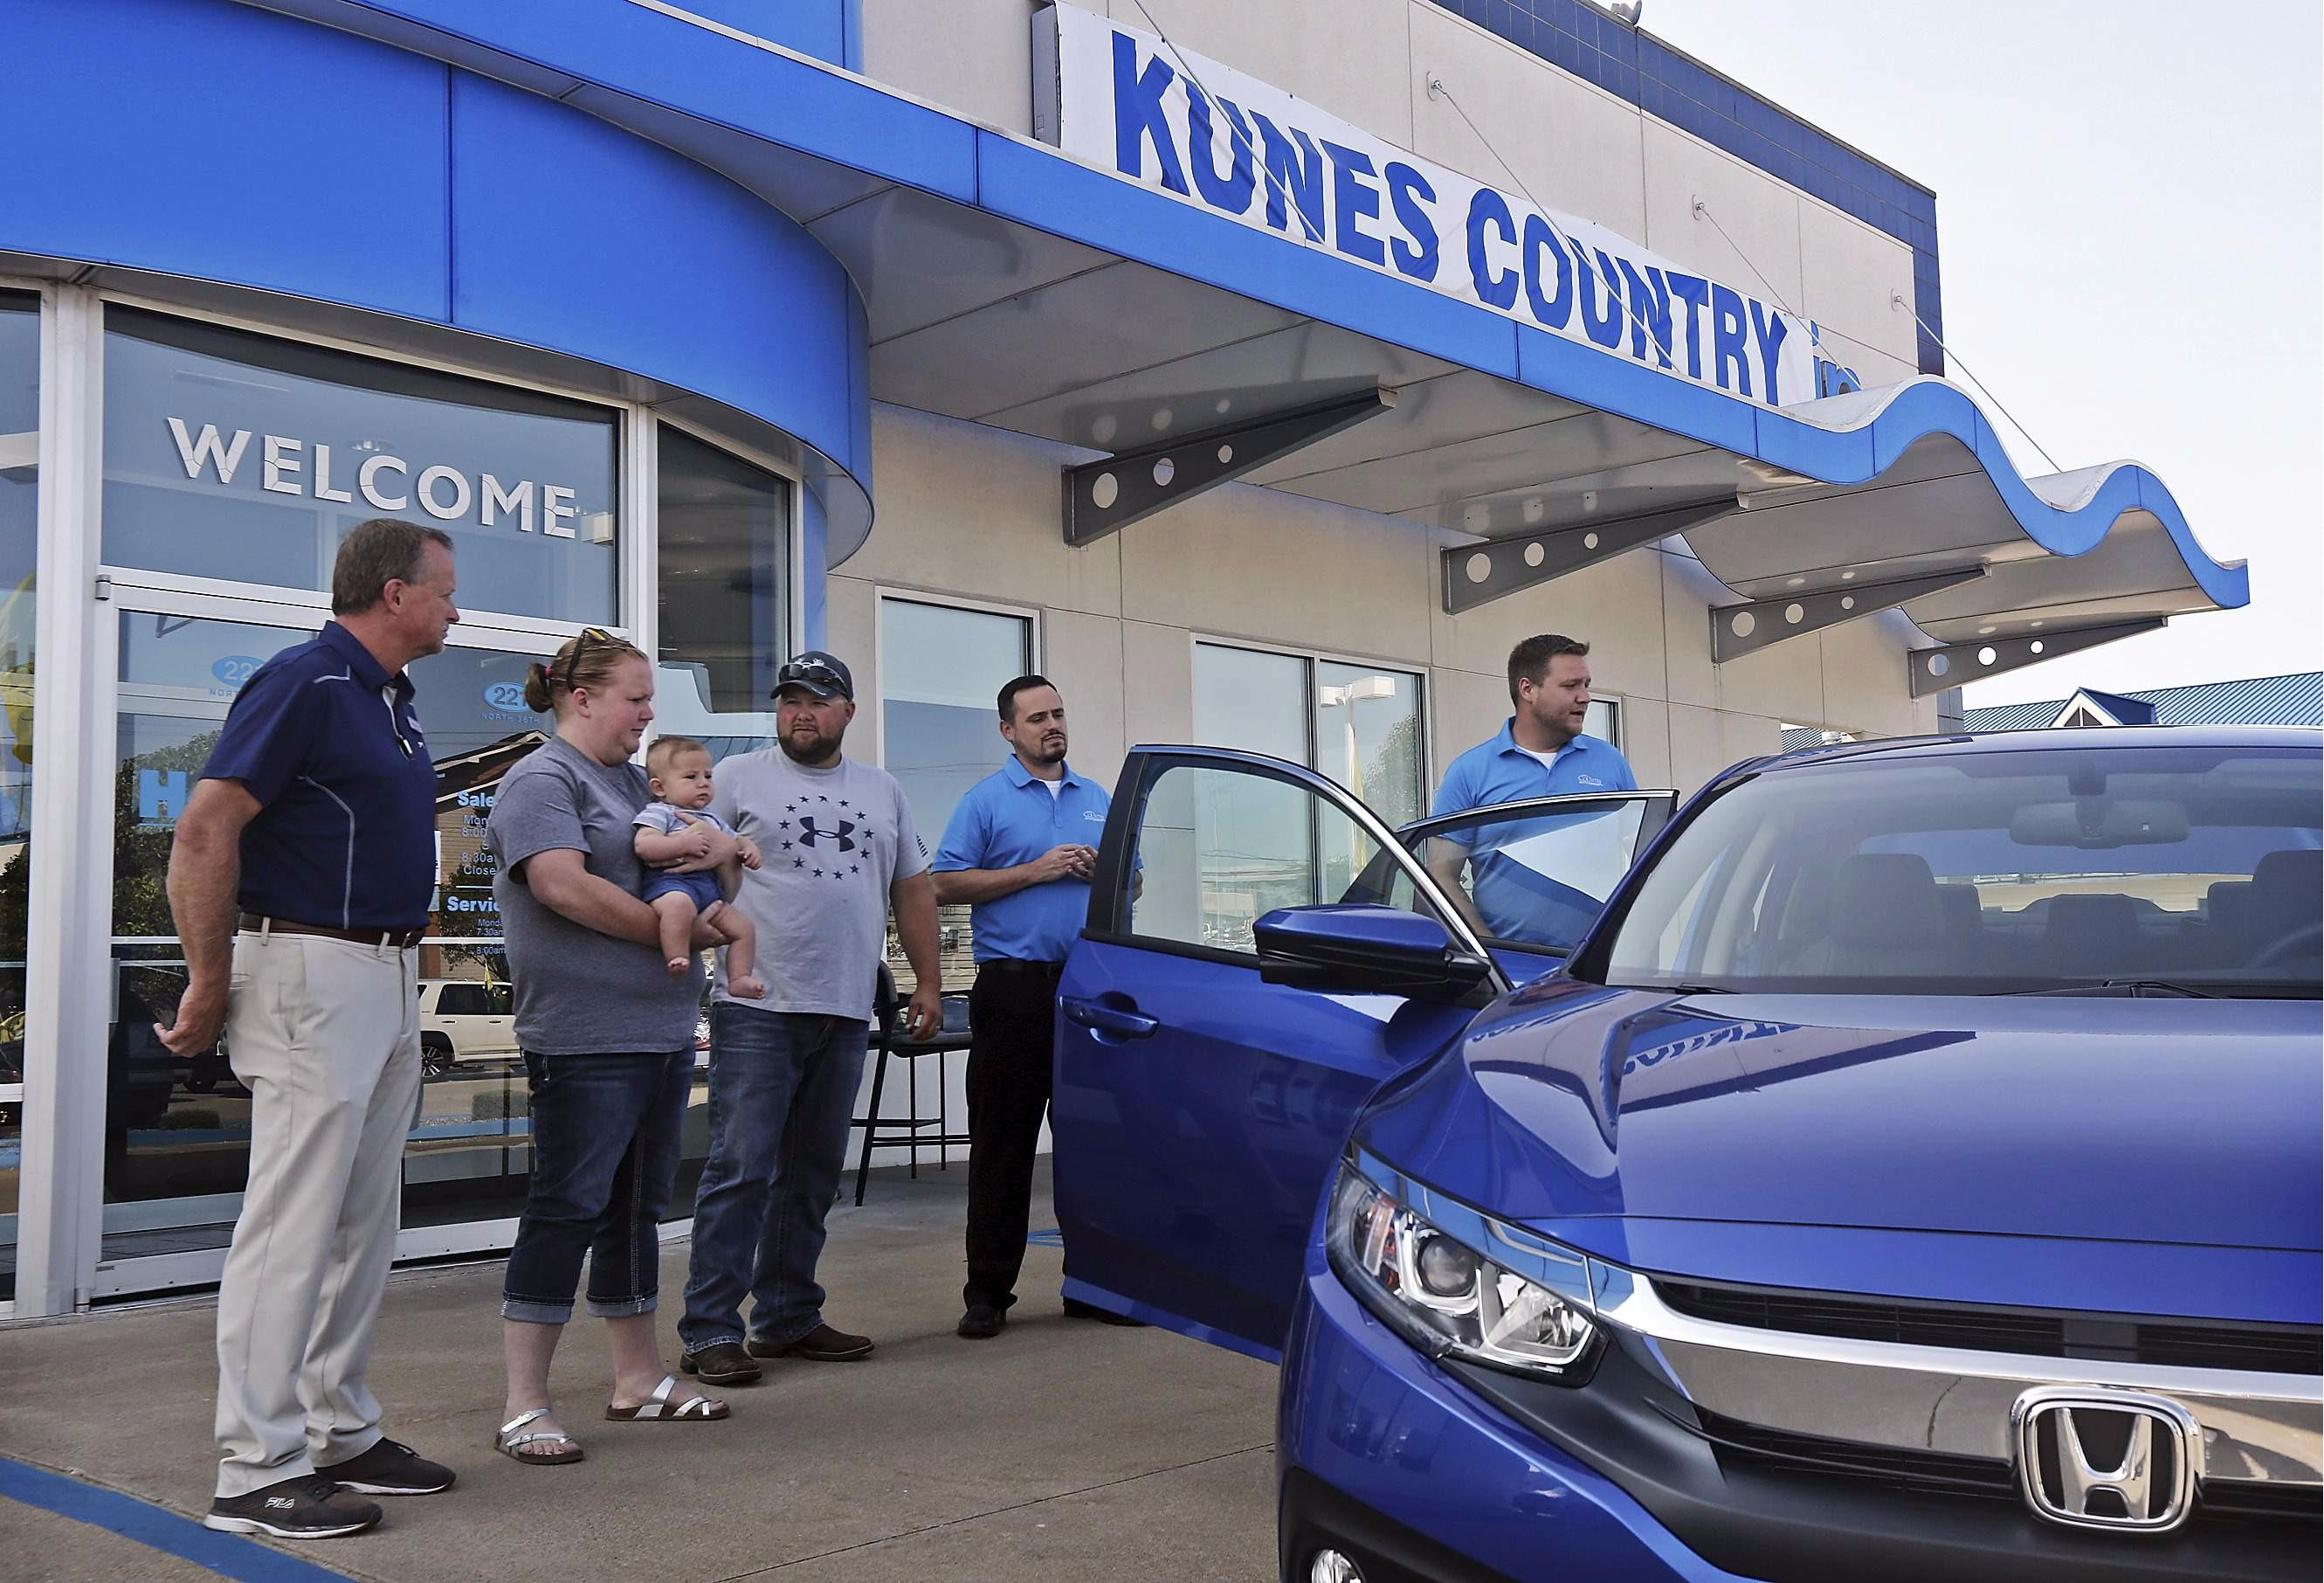 Kunes country honda of quincy coupons near me in quincy for Honda oil change coupon ny